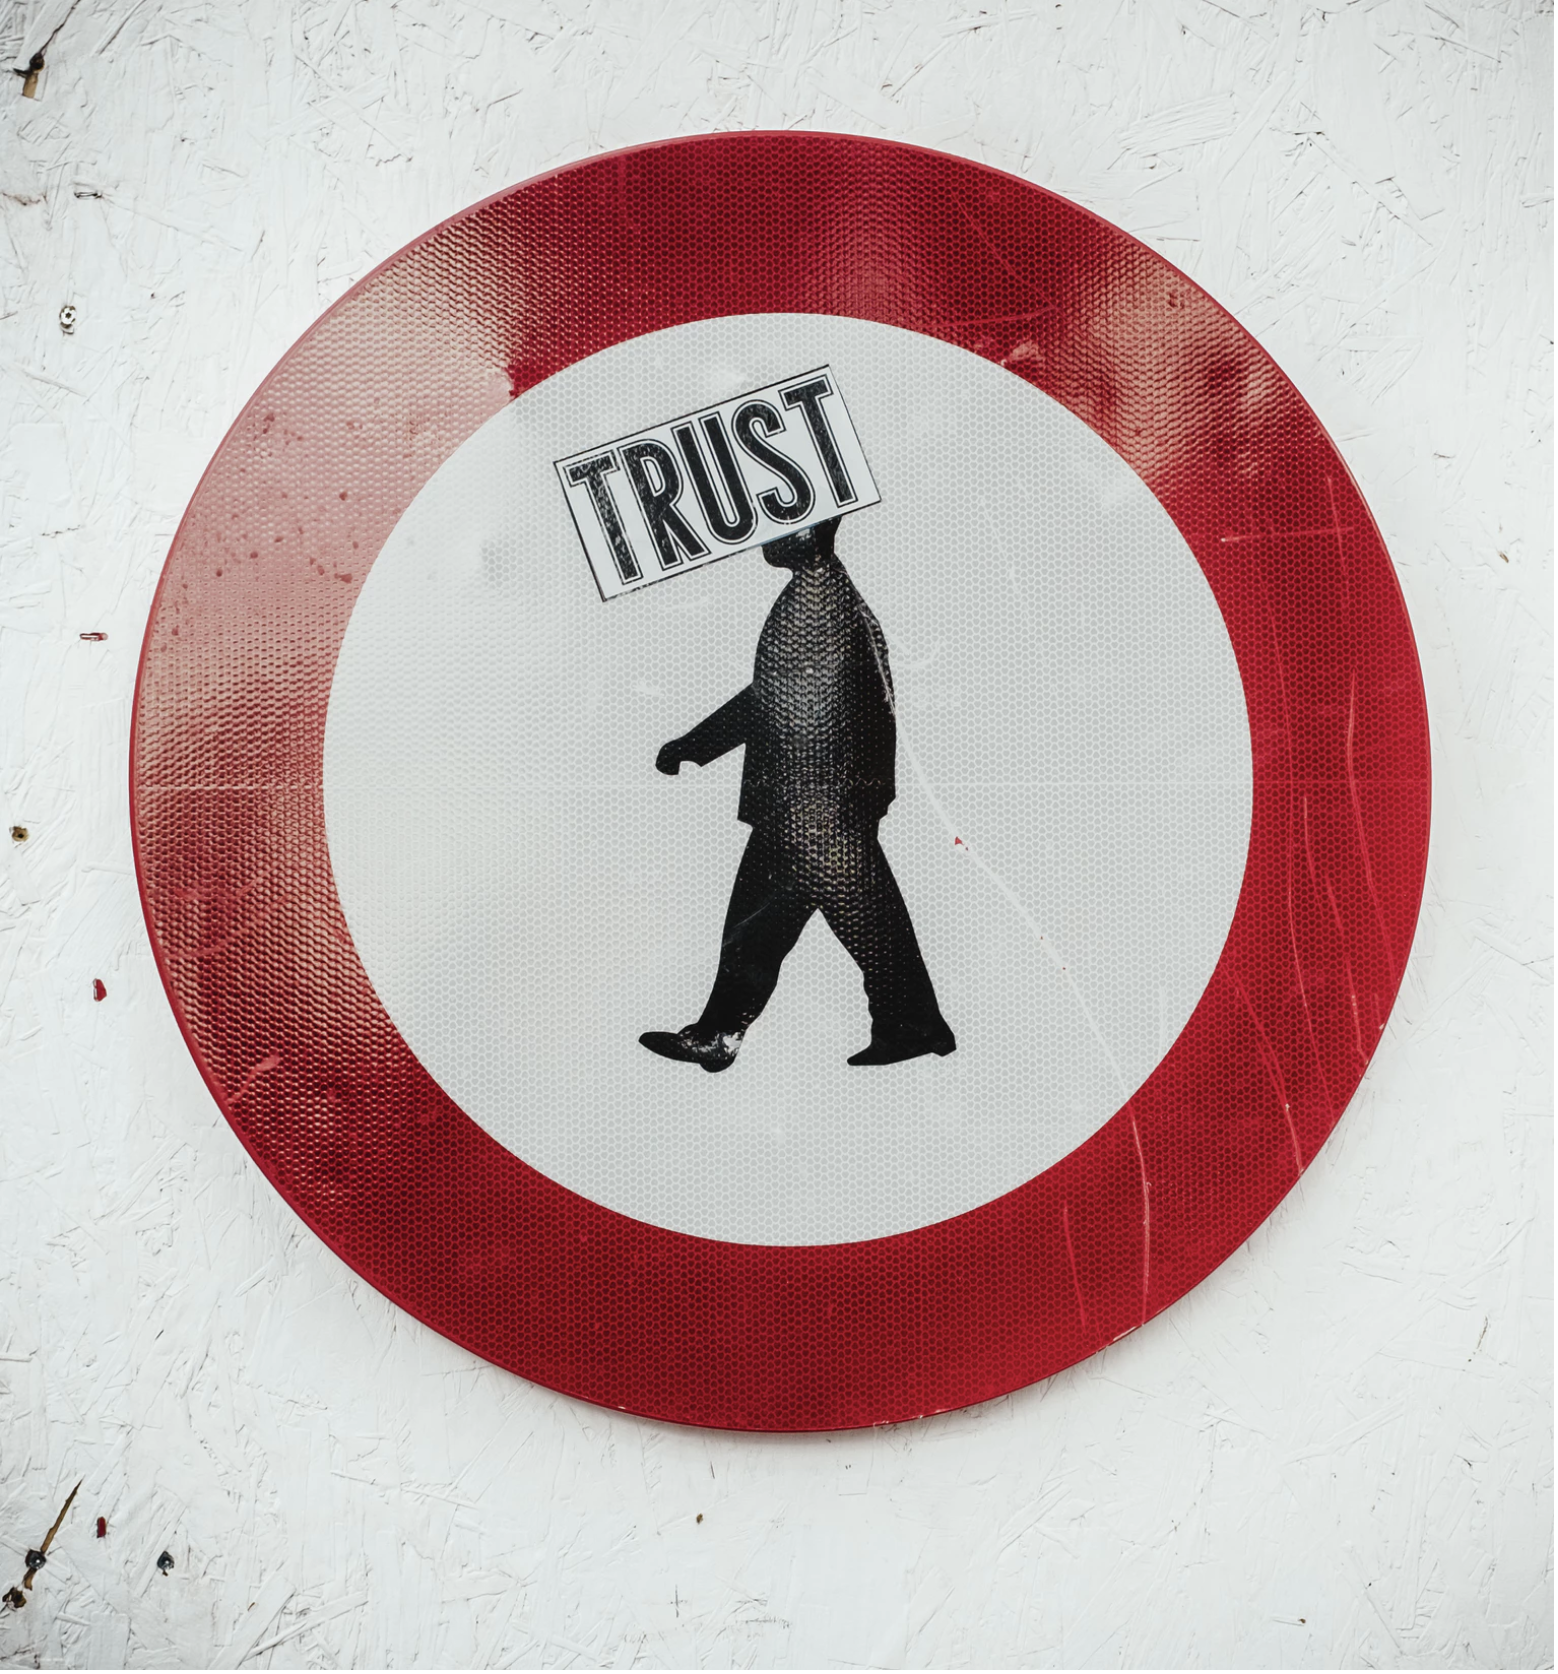 Blogging Etiquette - using someone else's images without their permission is a breach of trust.